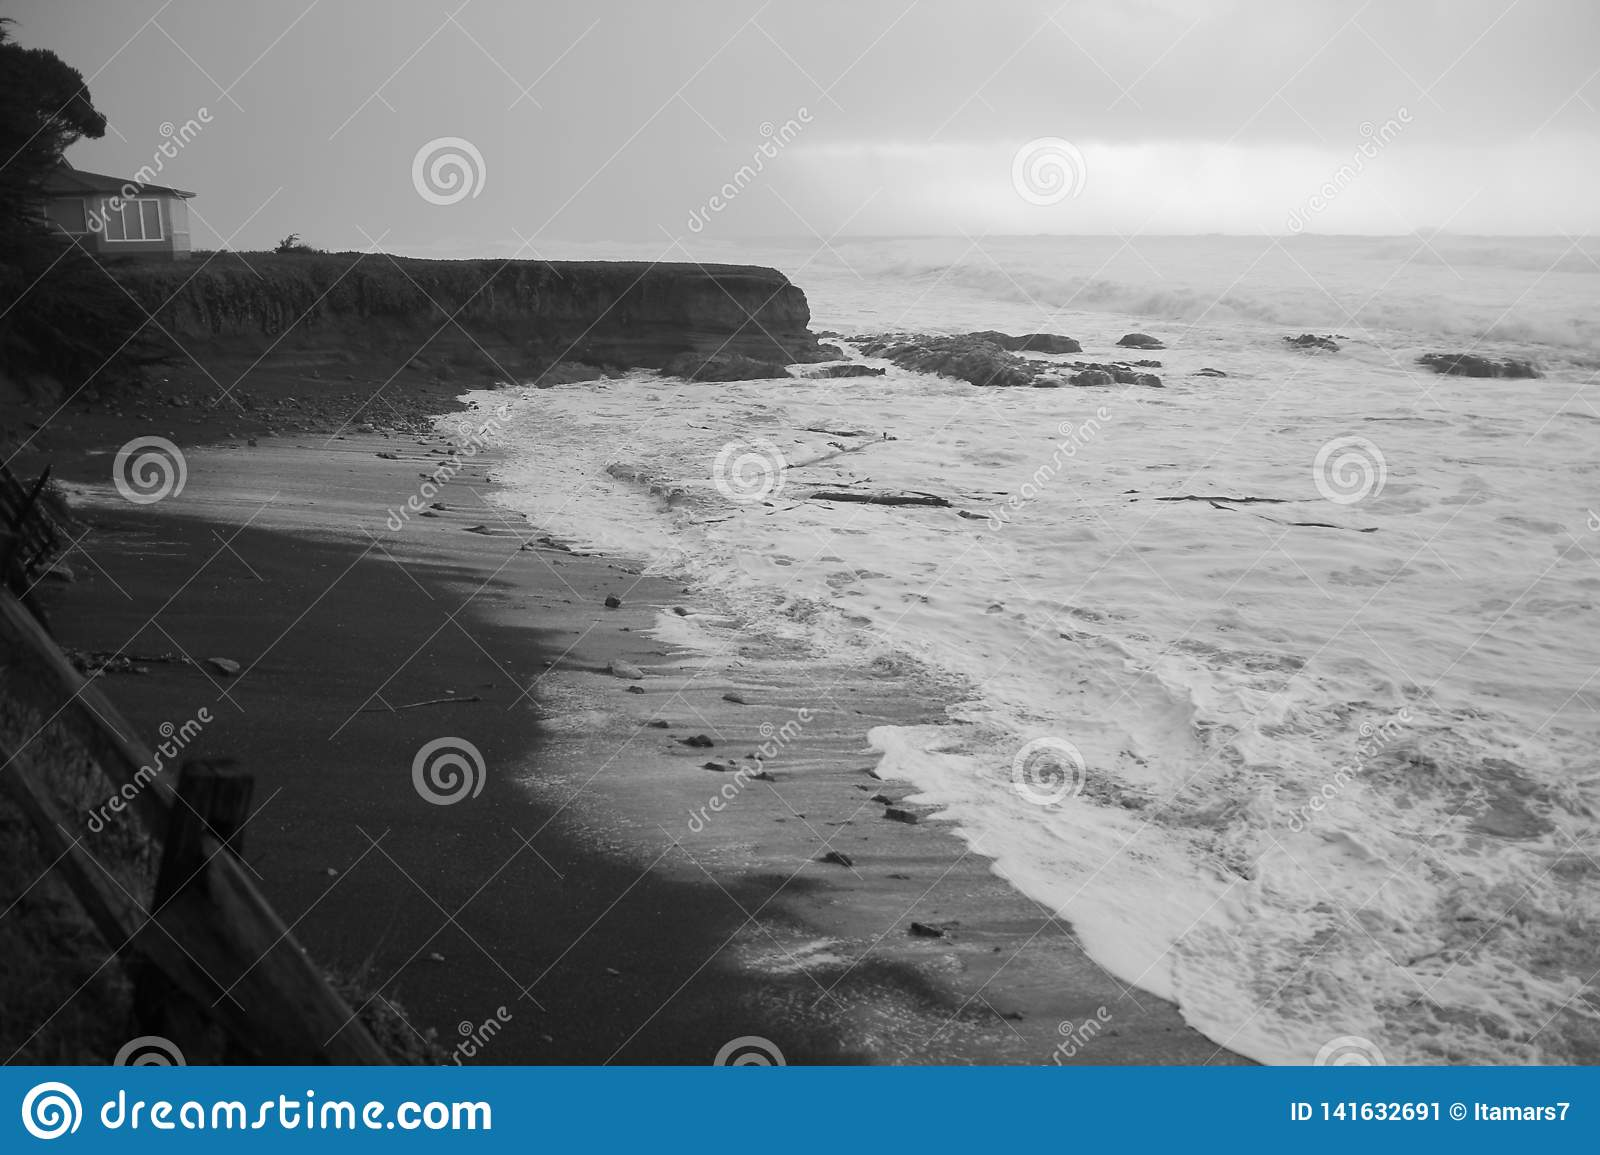 Shelter cove, California. A stormy day.